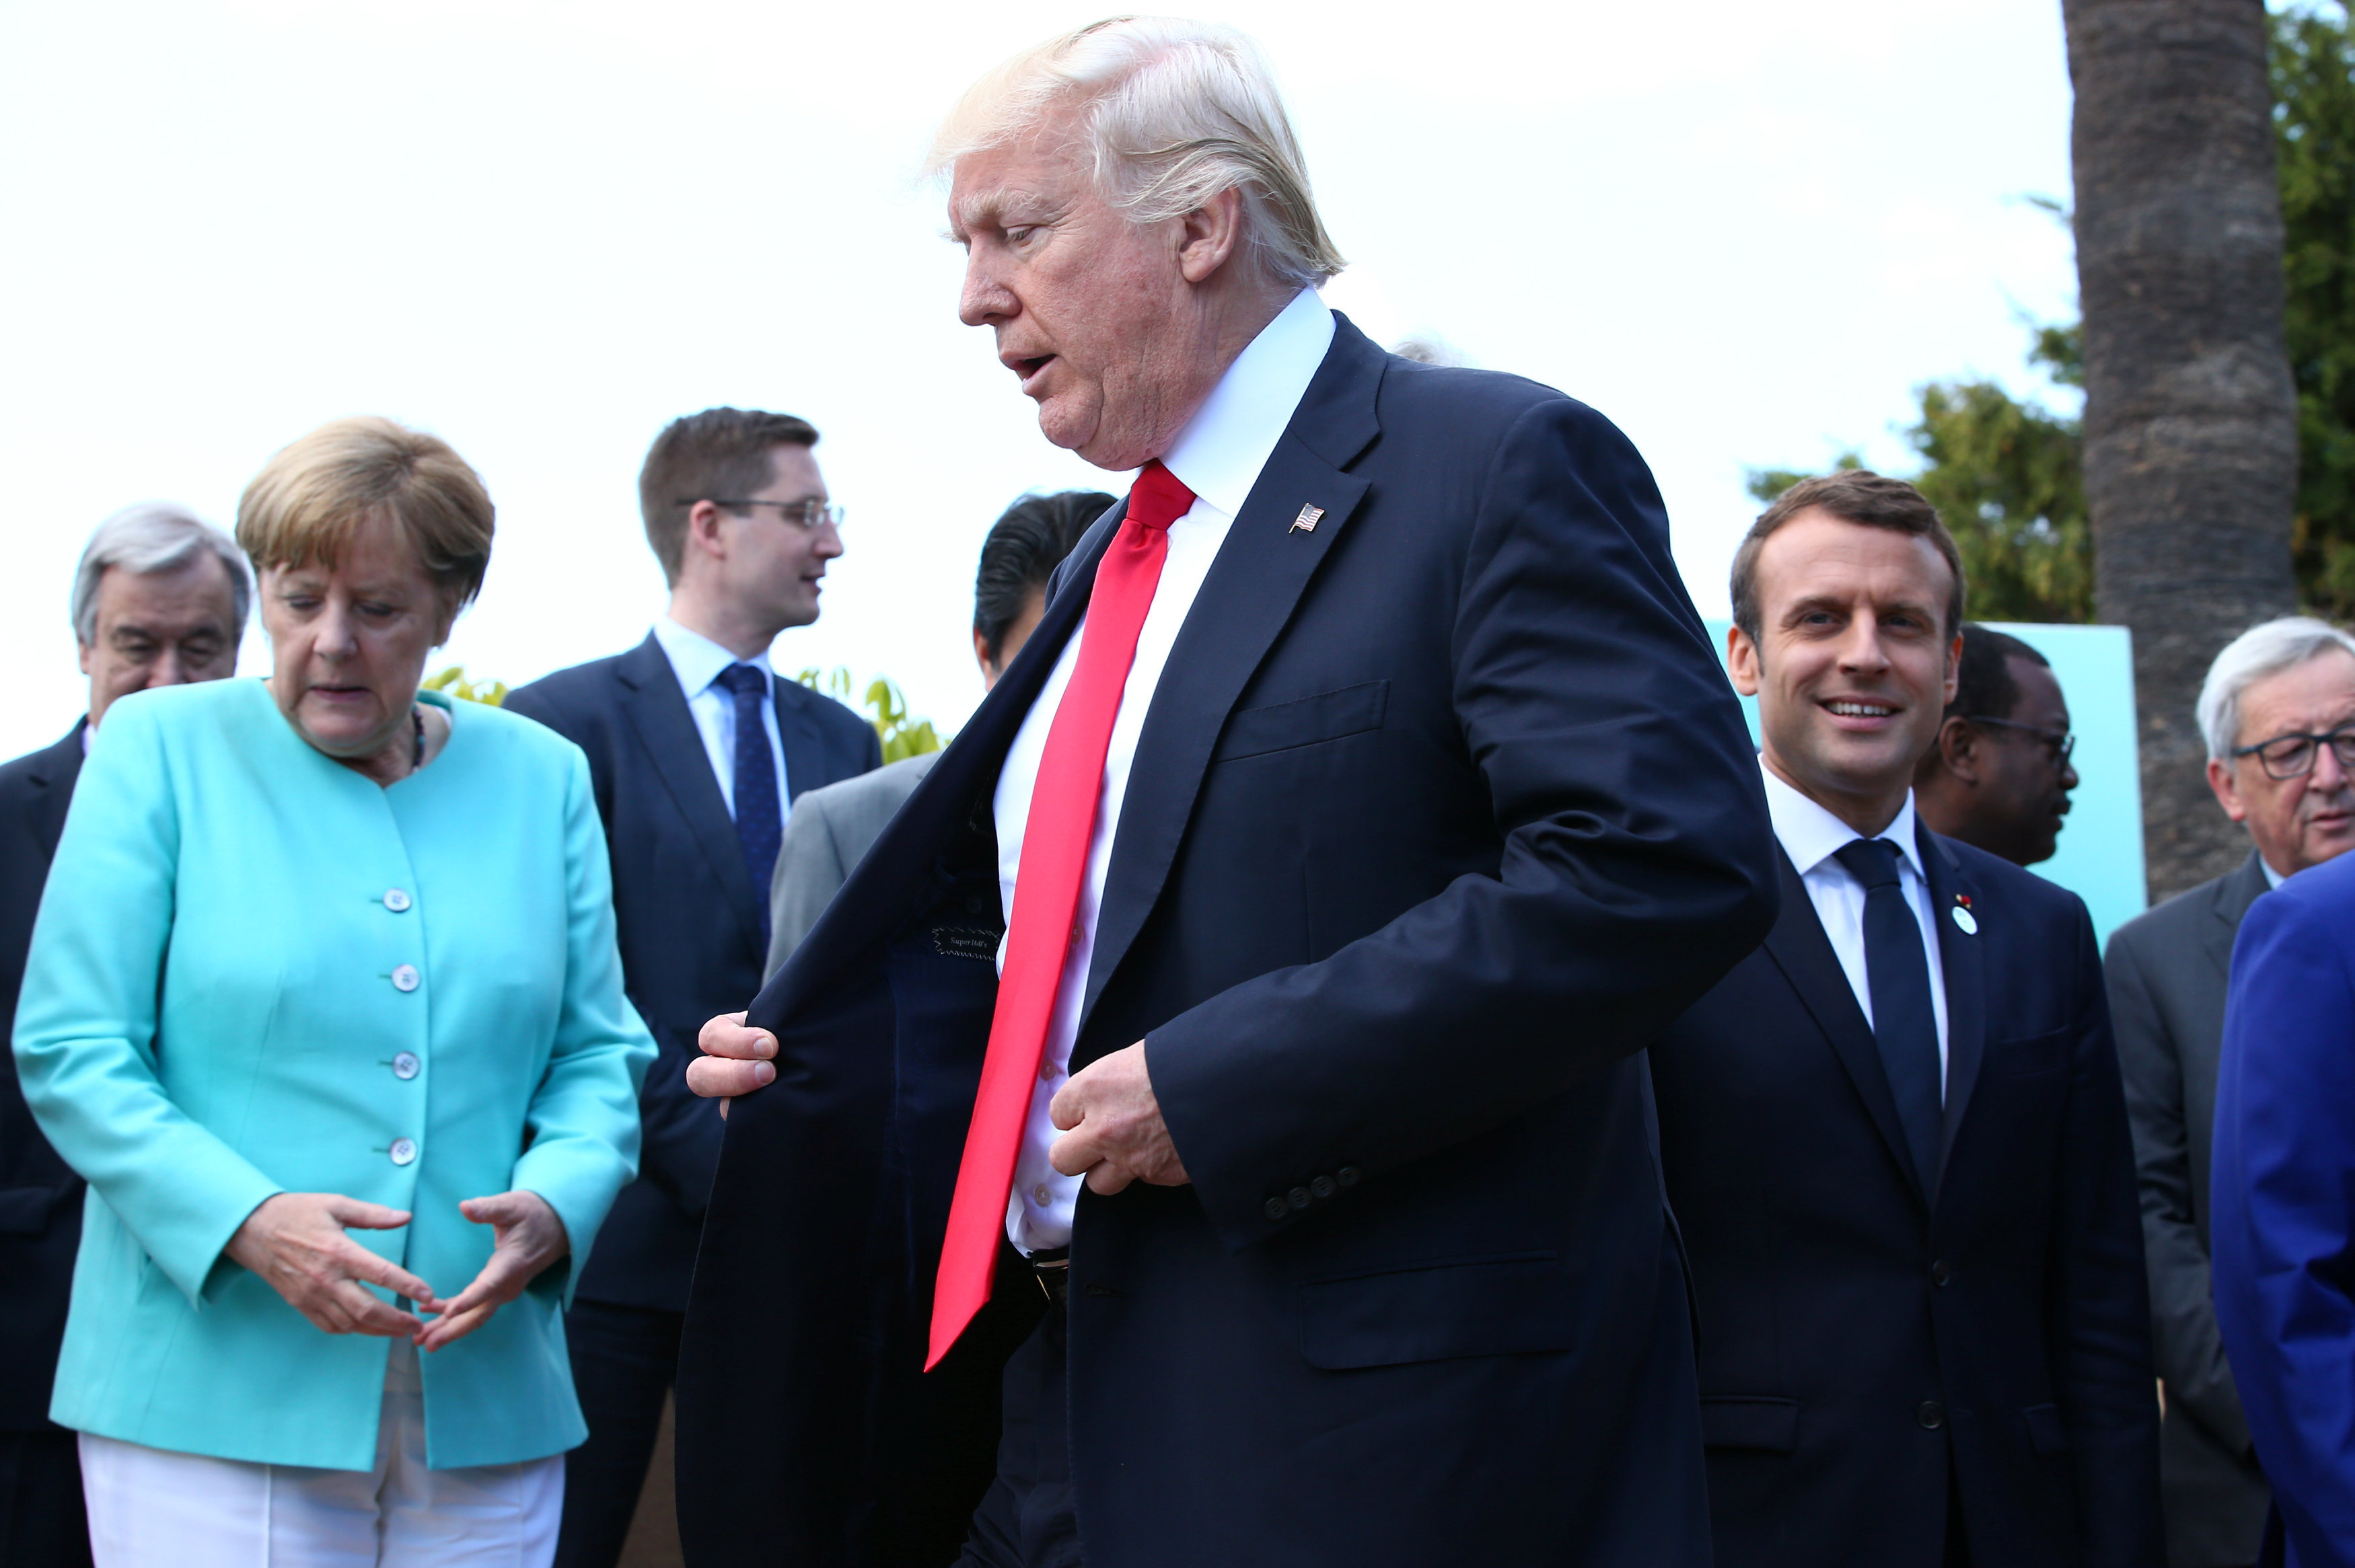 German Chancellor Angela Merkel, U.S. President Donald Trump and French President Emmanuel Macron during a family photo at the G7 Summit expanded session in Taormina, Sicily, Italy, May 27, 2017